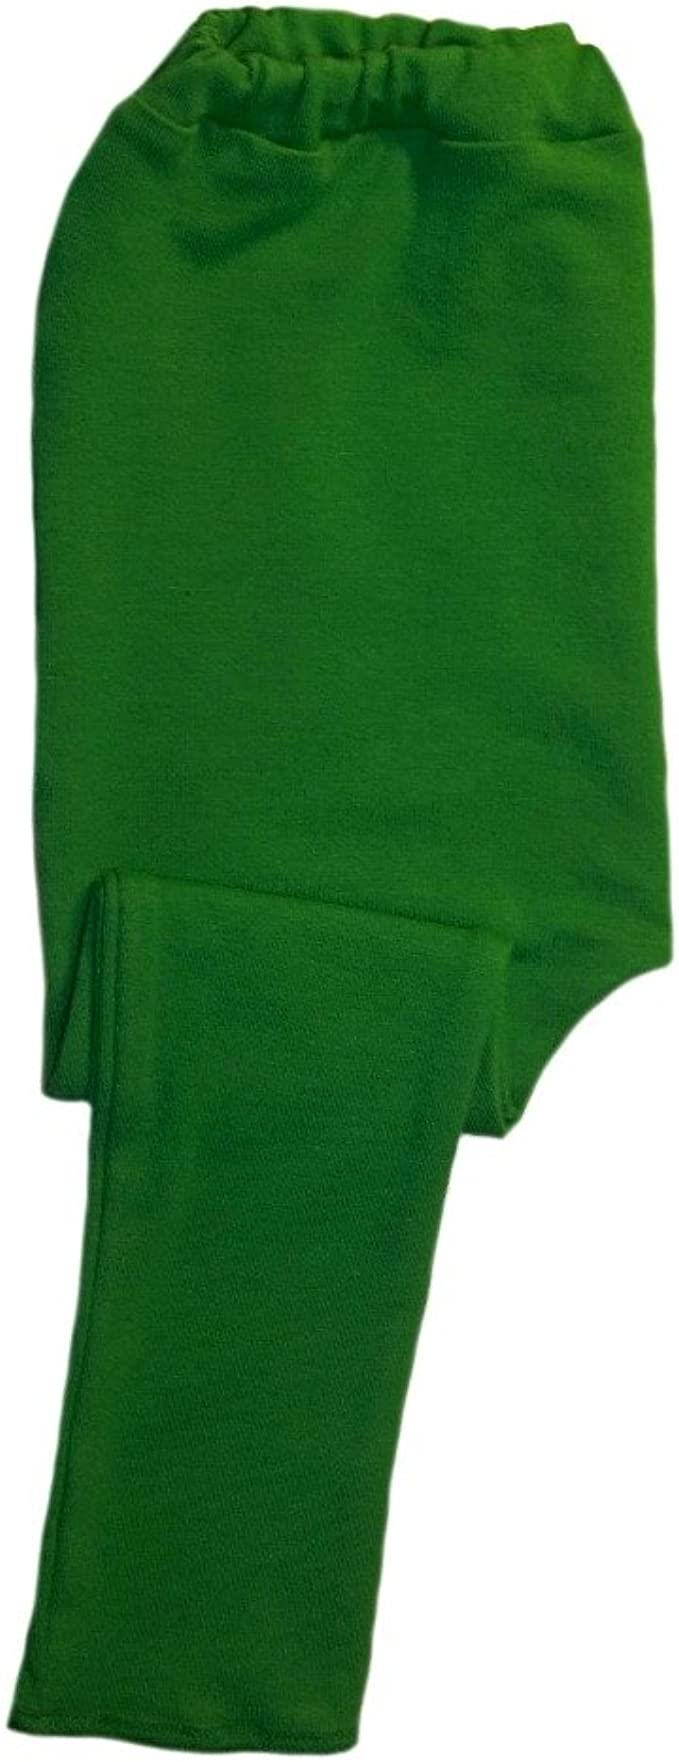 Jacquis Baby Girls Kelly Green Cotton Spandex Knit Tights